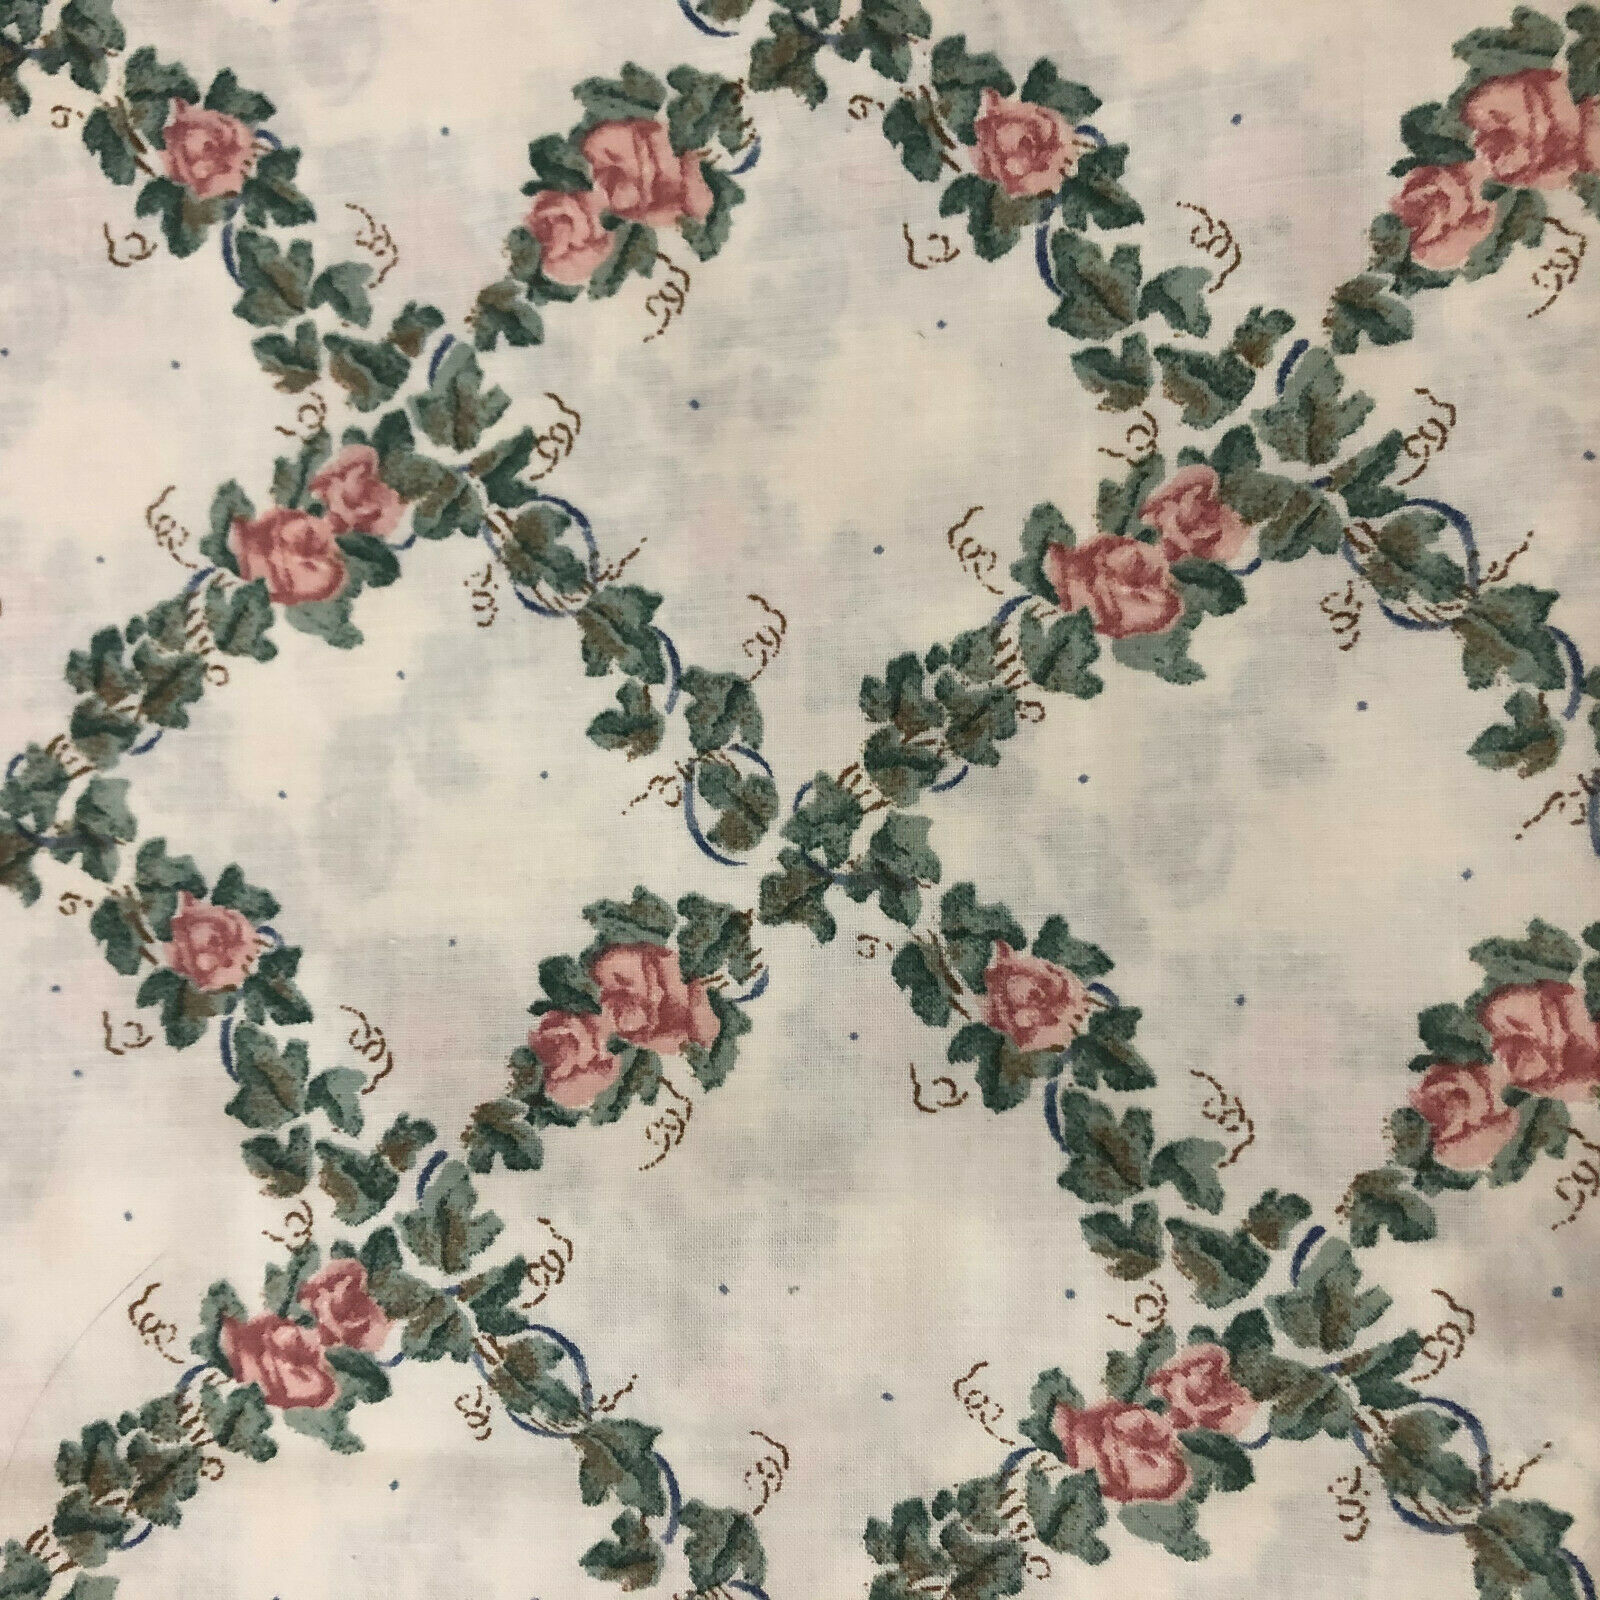 Image 1 - BTY Vintage Daisy Kindgom Floral Ivy 1994 COTTON FABRIC